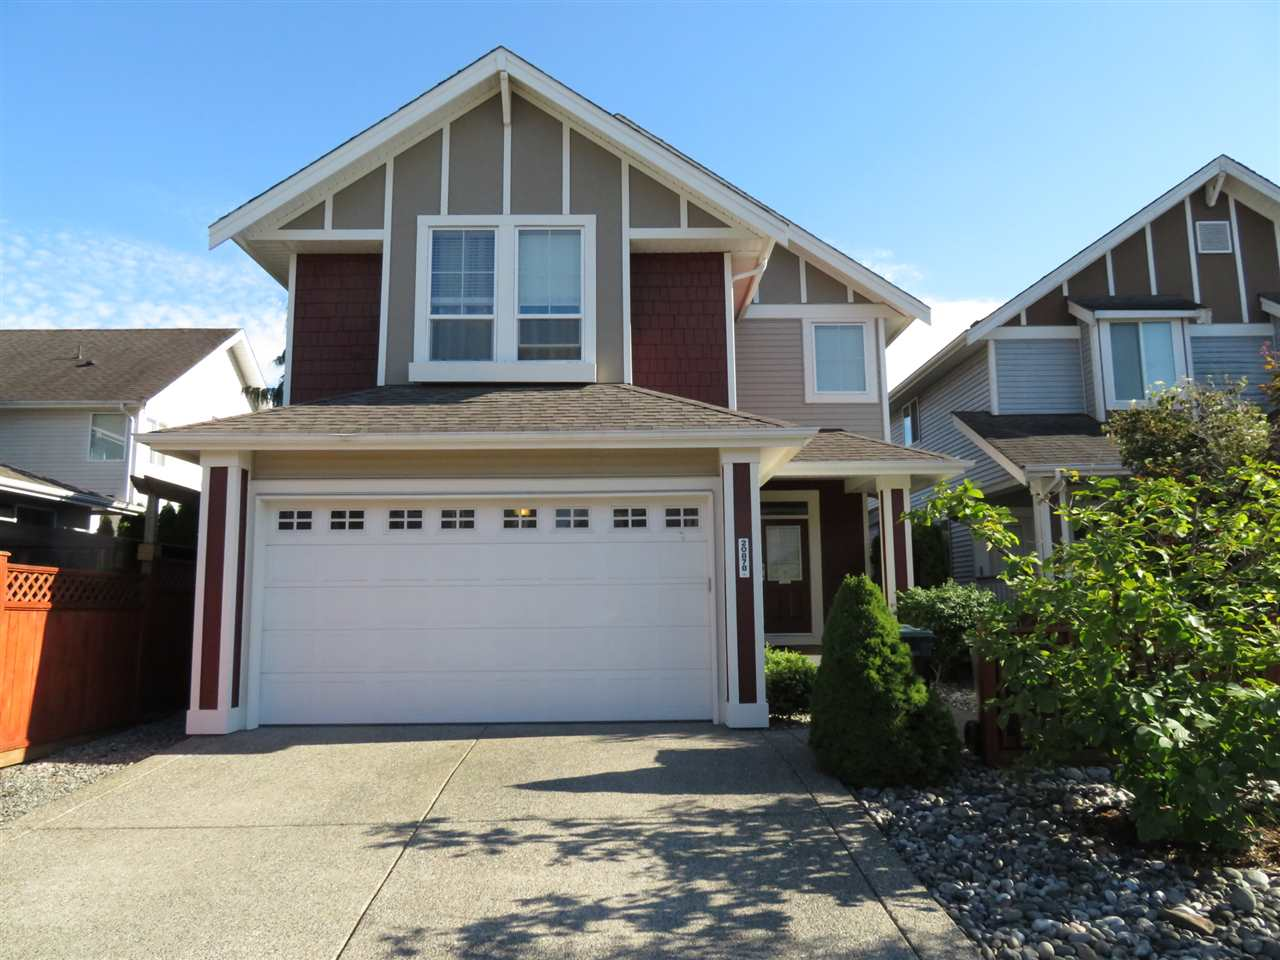 Detached at 20878 84A AVENUE, Langley, British Columbia. Image 1